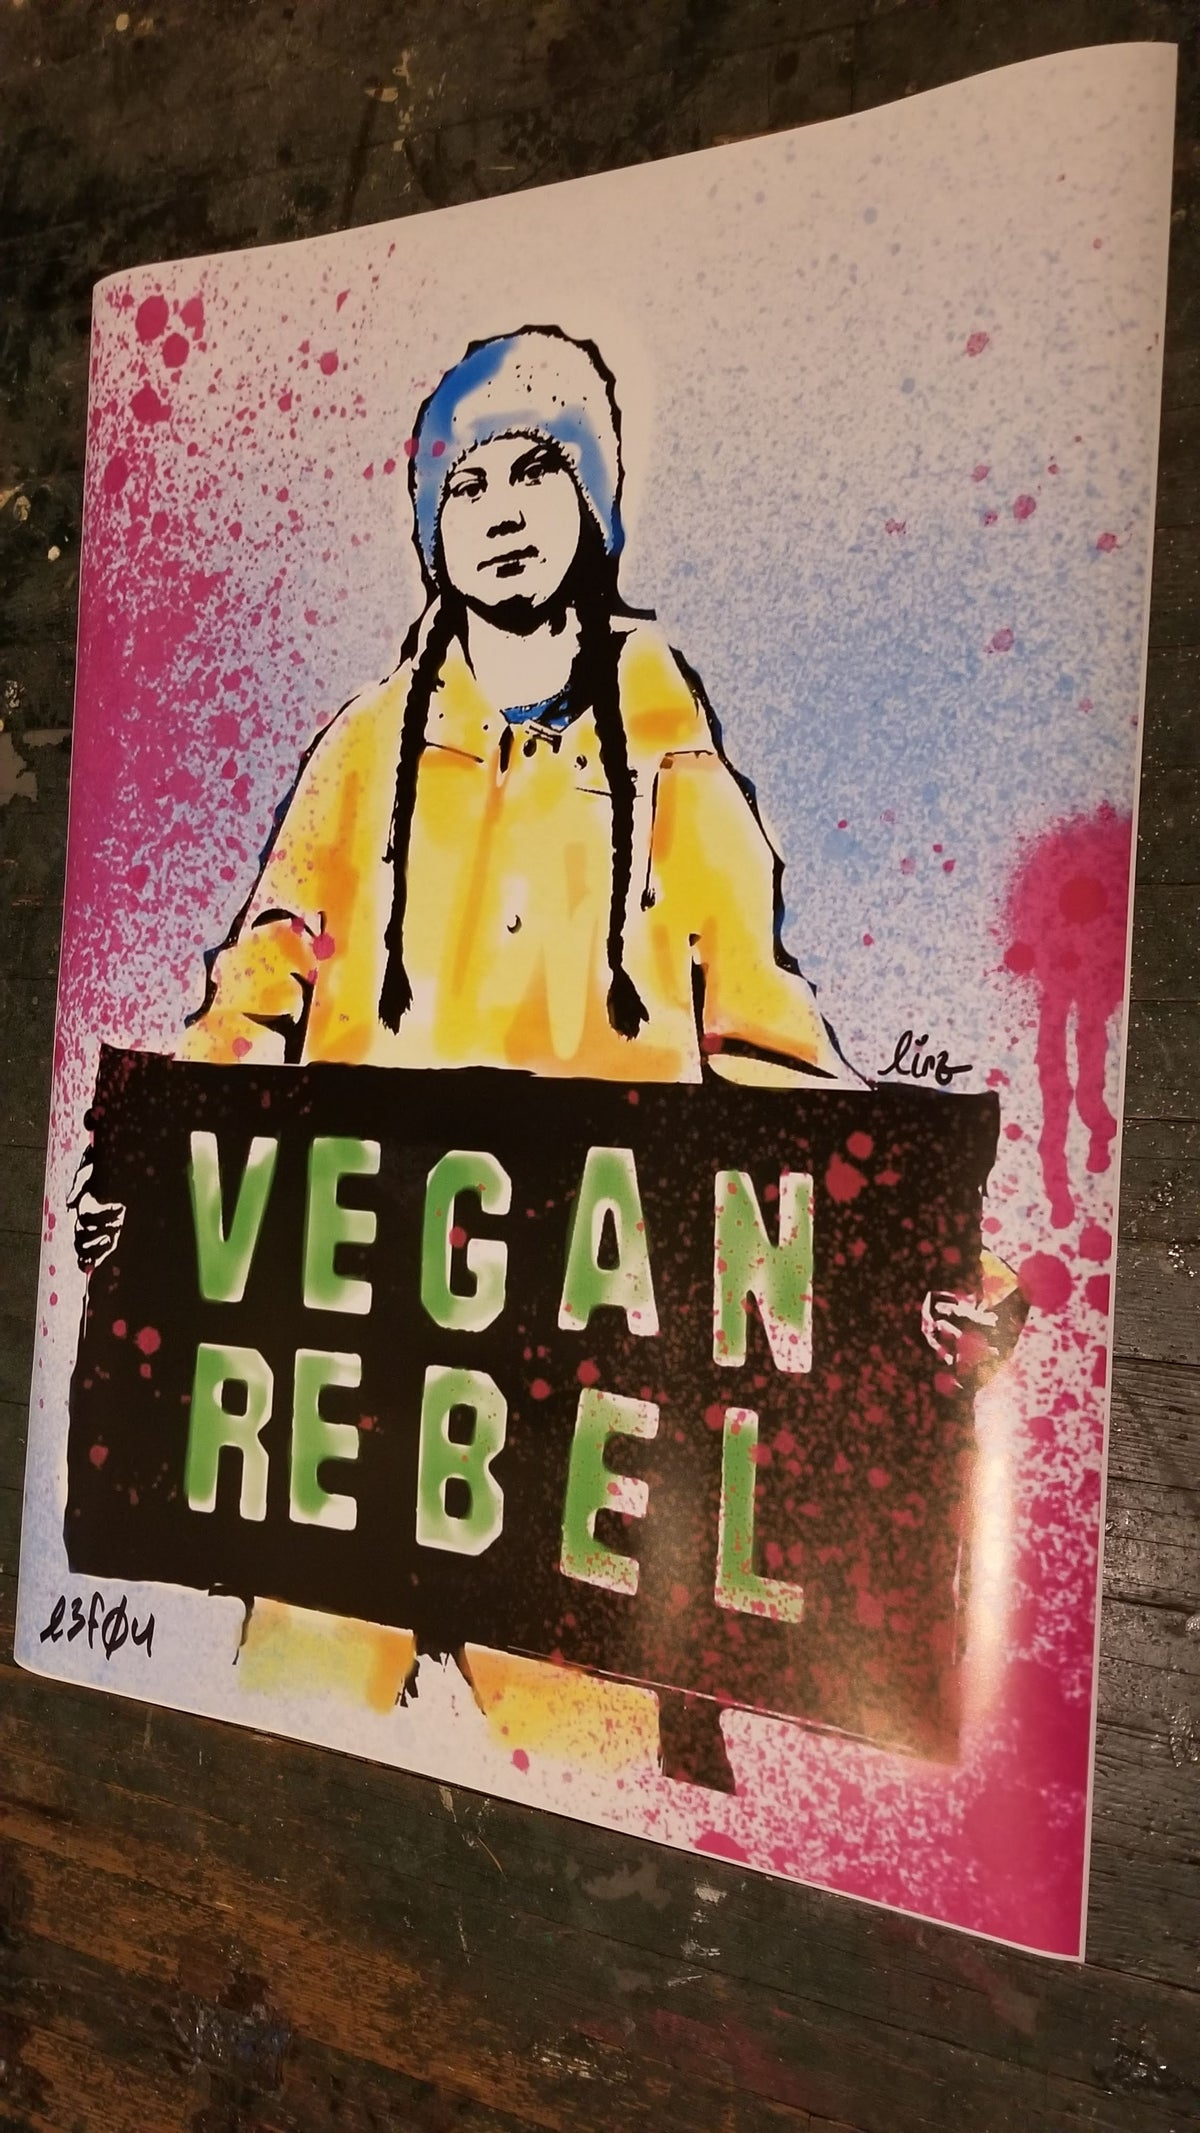 Ltd Edition Greta Thunberg Poster or Newsprint collab with Lindsay Lewis